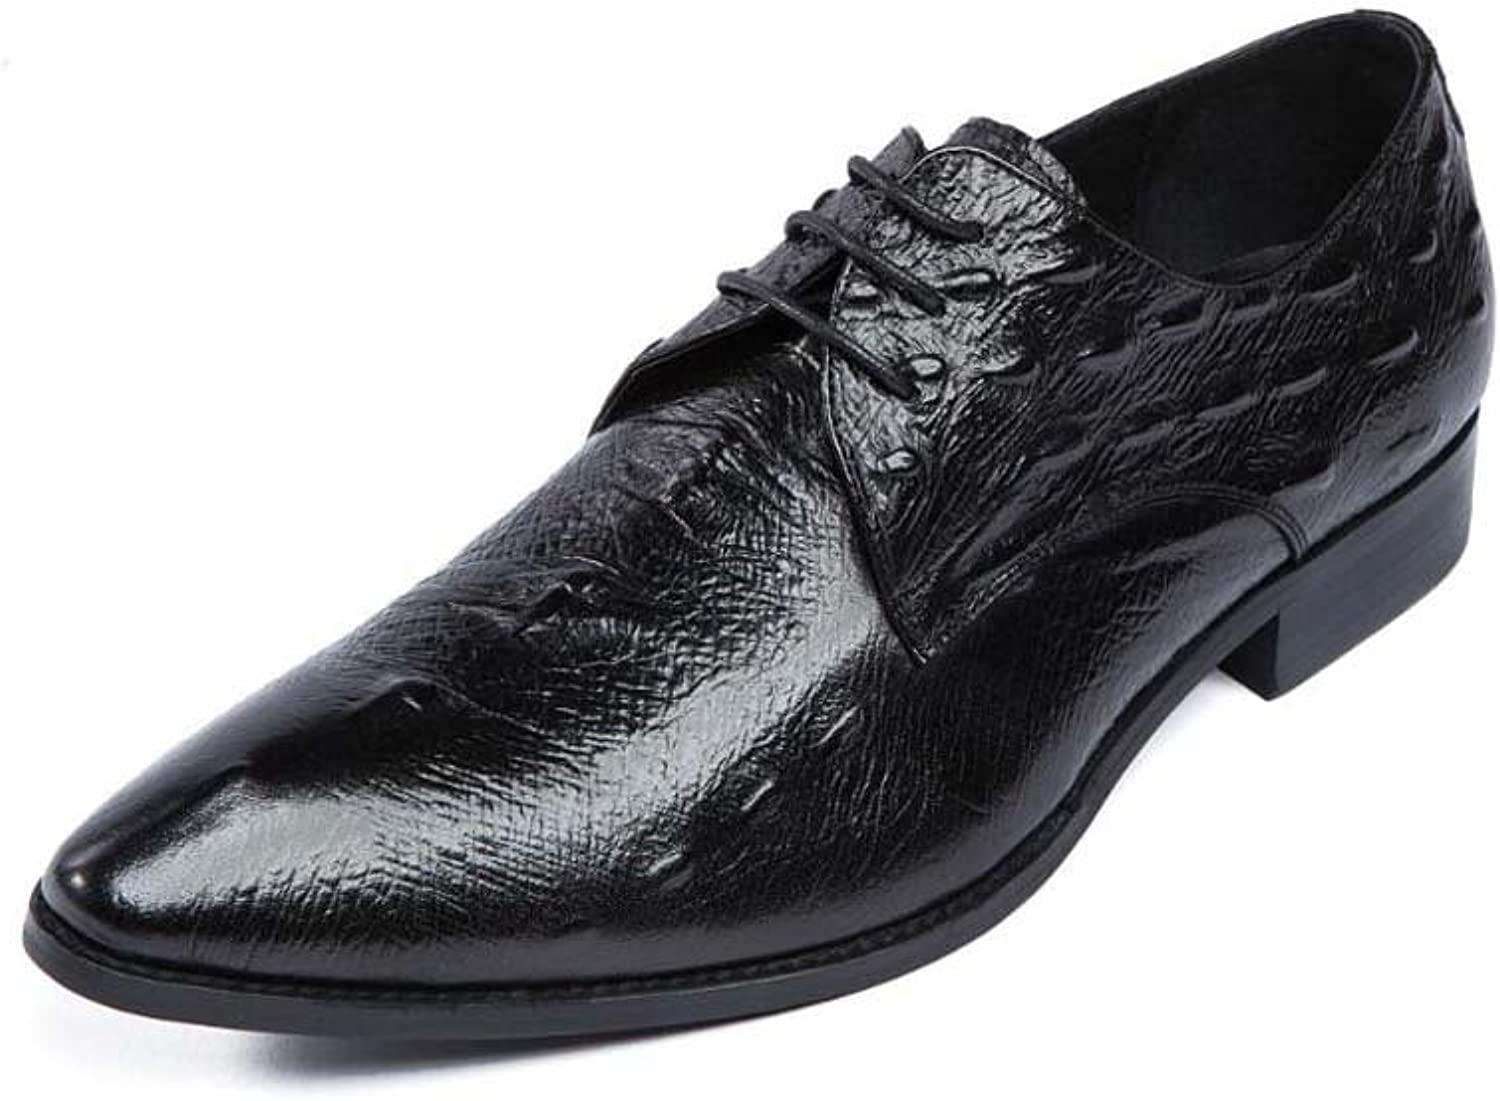 Men's Business Dress shoes Atmospheric Pressure Flower Pointed shoes Comfortable New Summer